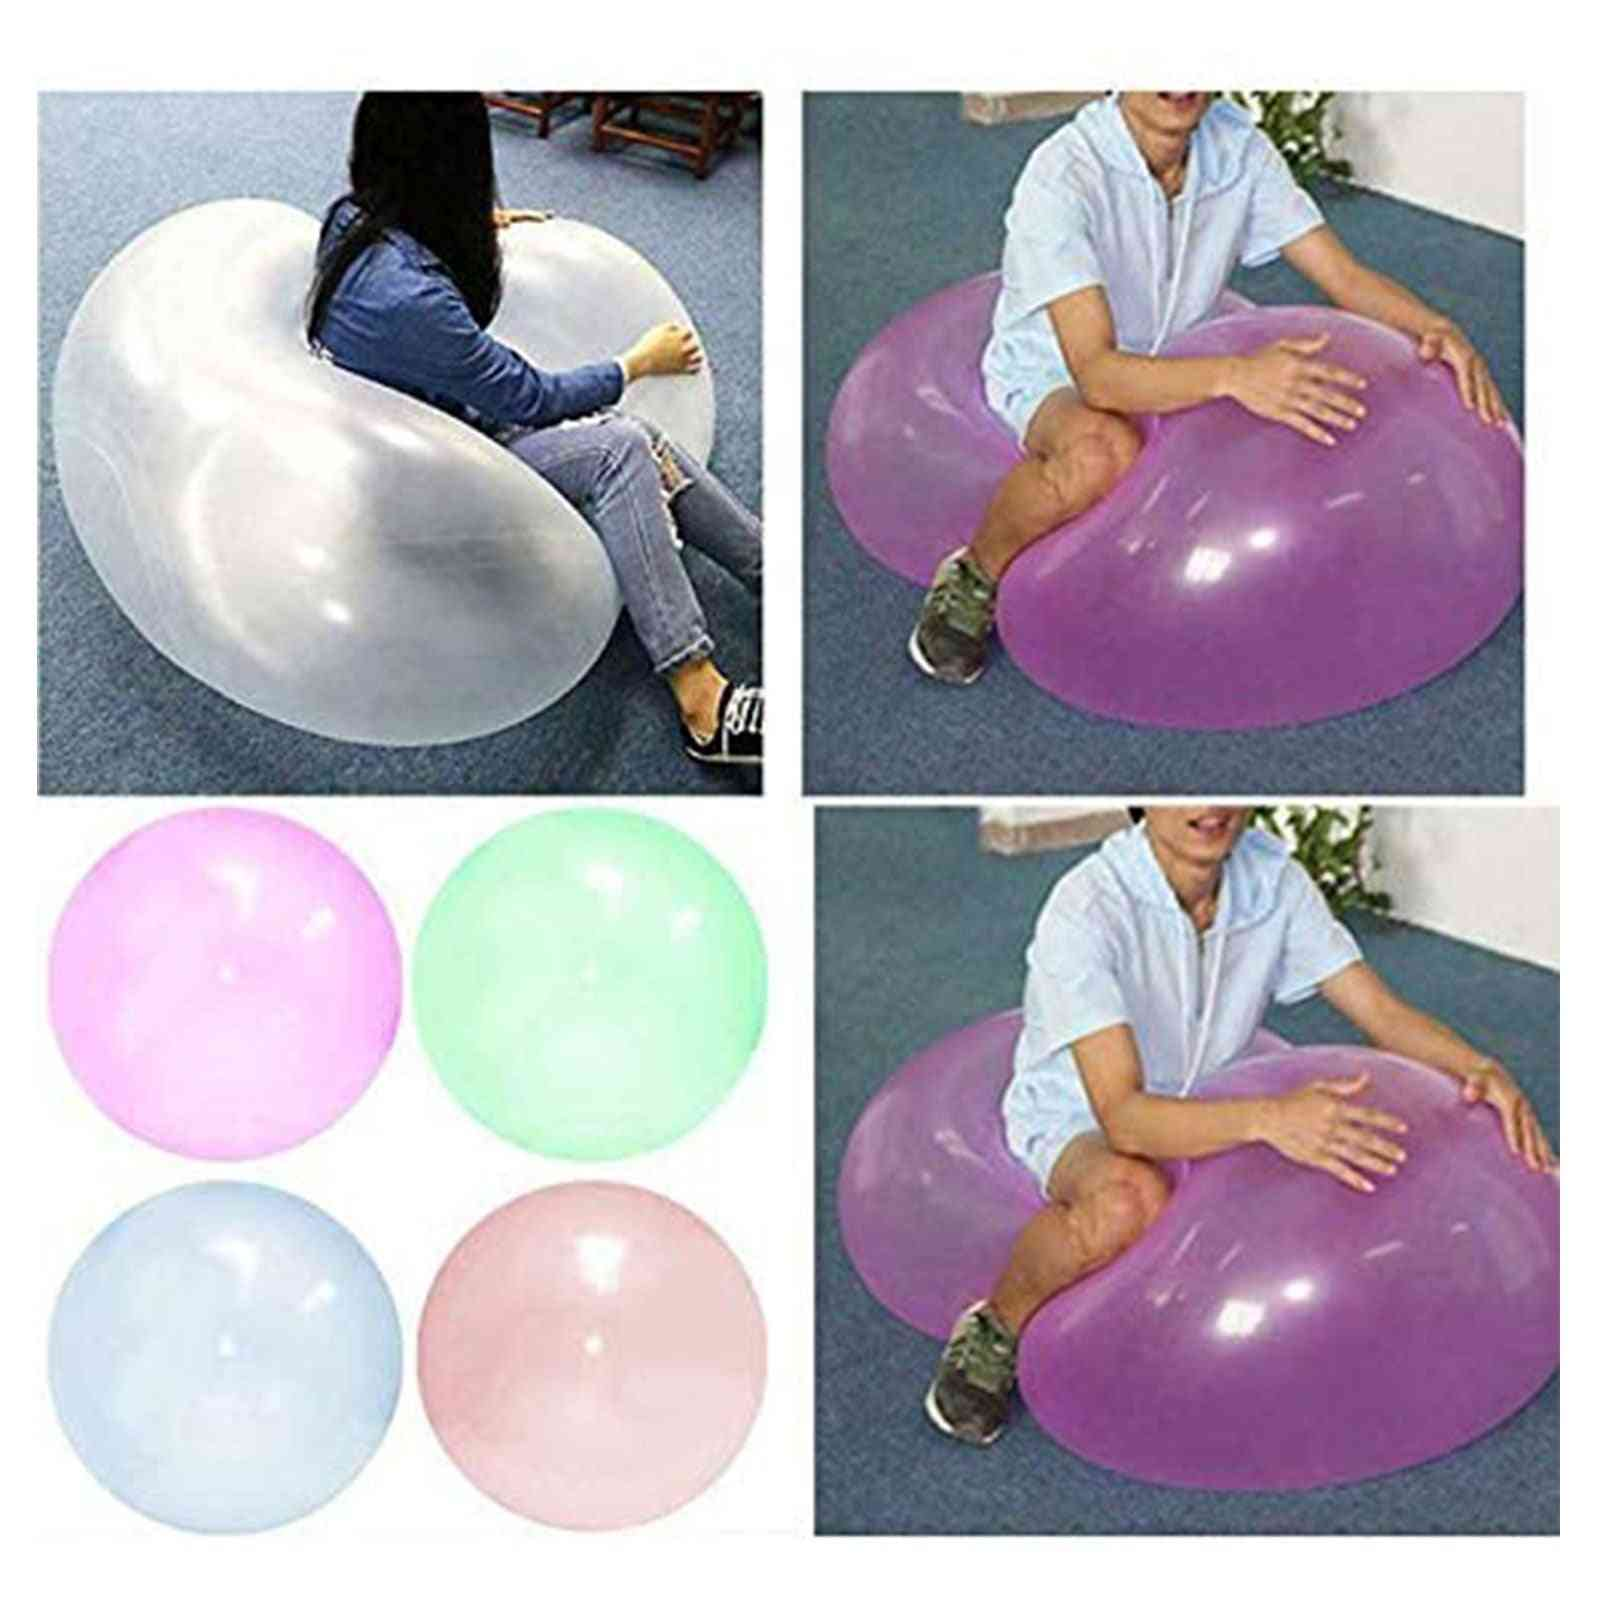 Solid Inflatable Squeeze Ball Transparent Bubble Ball Adult Anti-anxiety Stress Relief Water